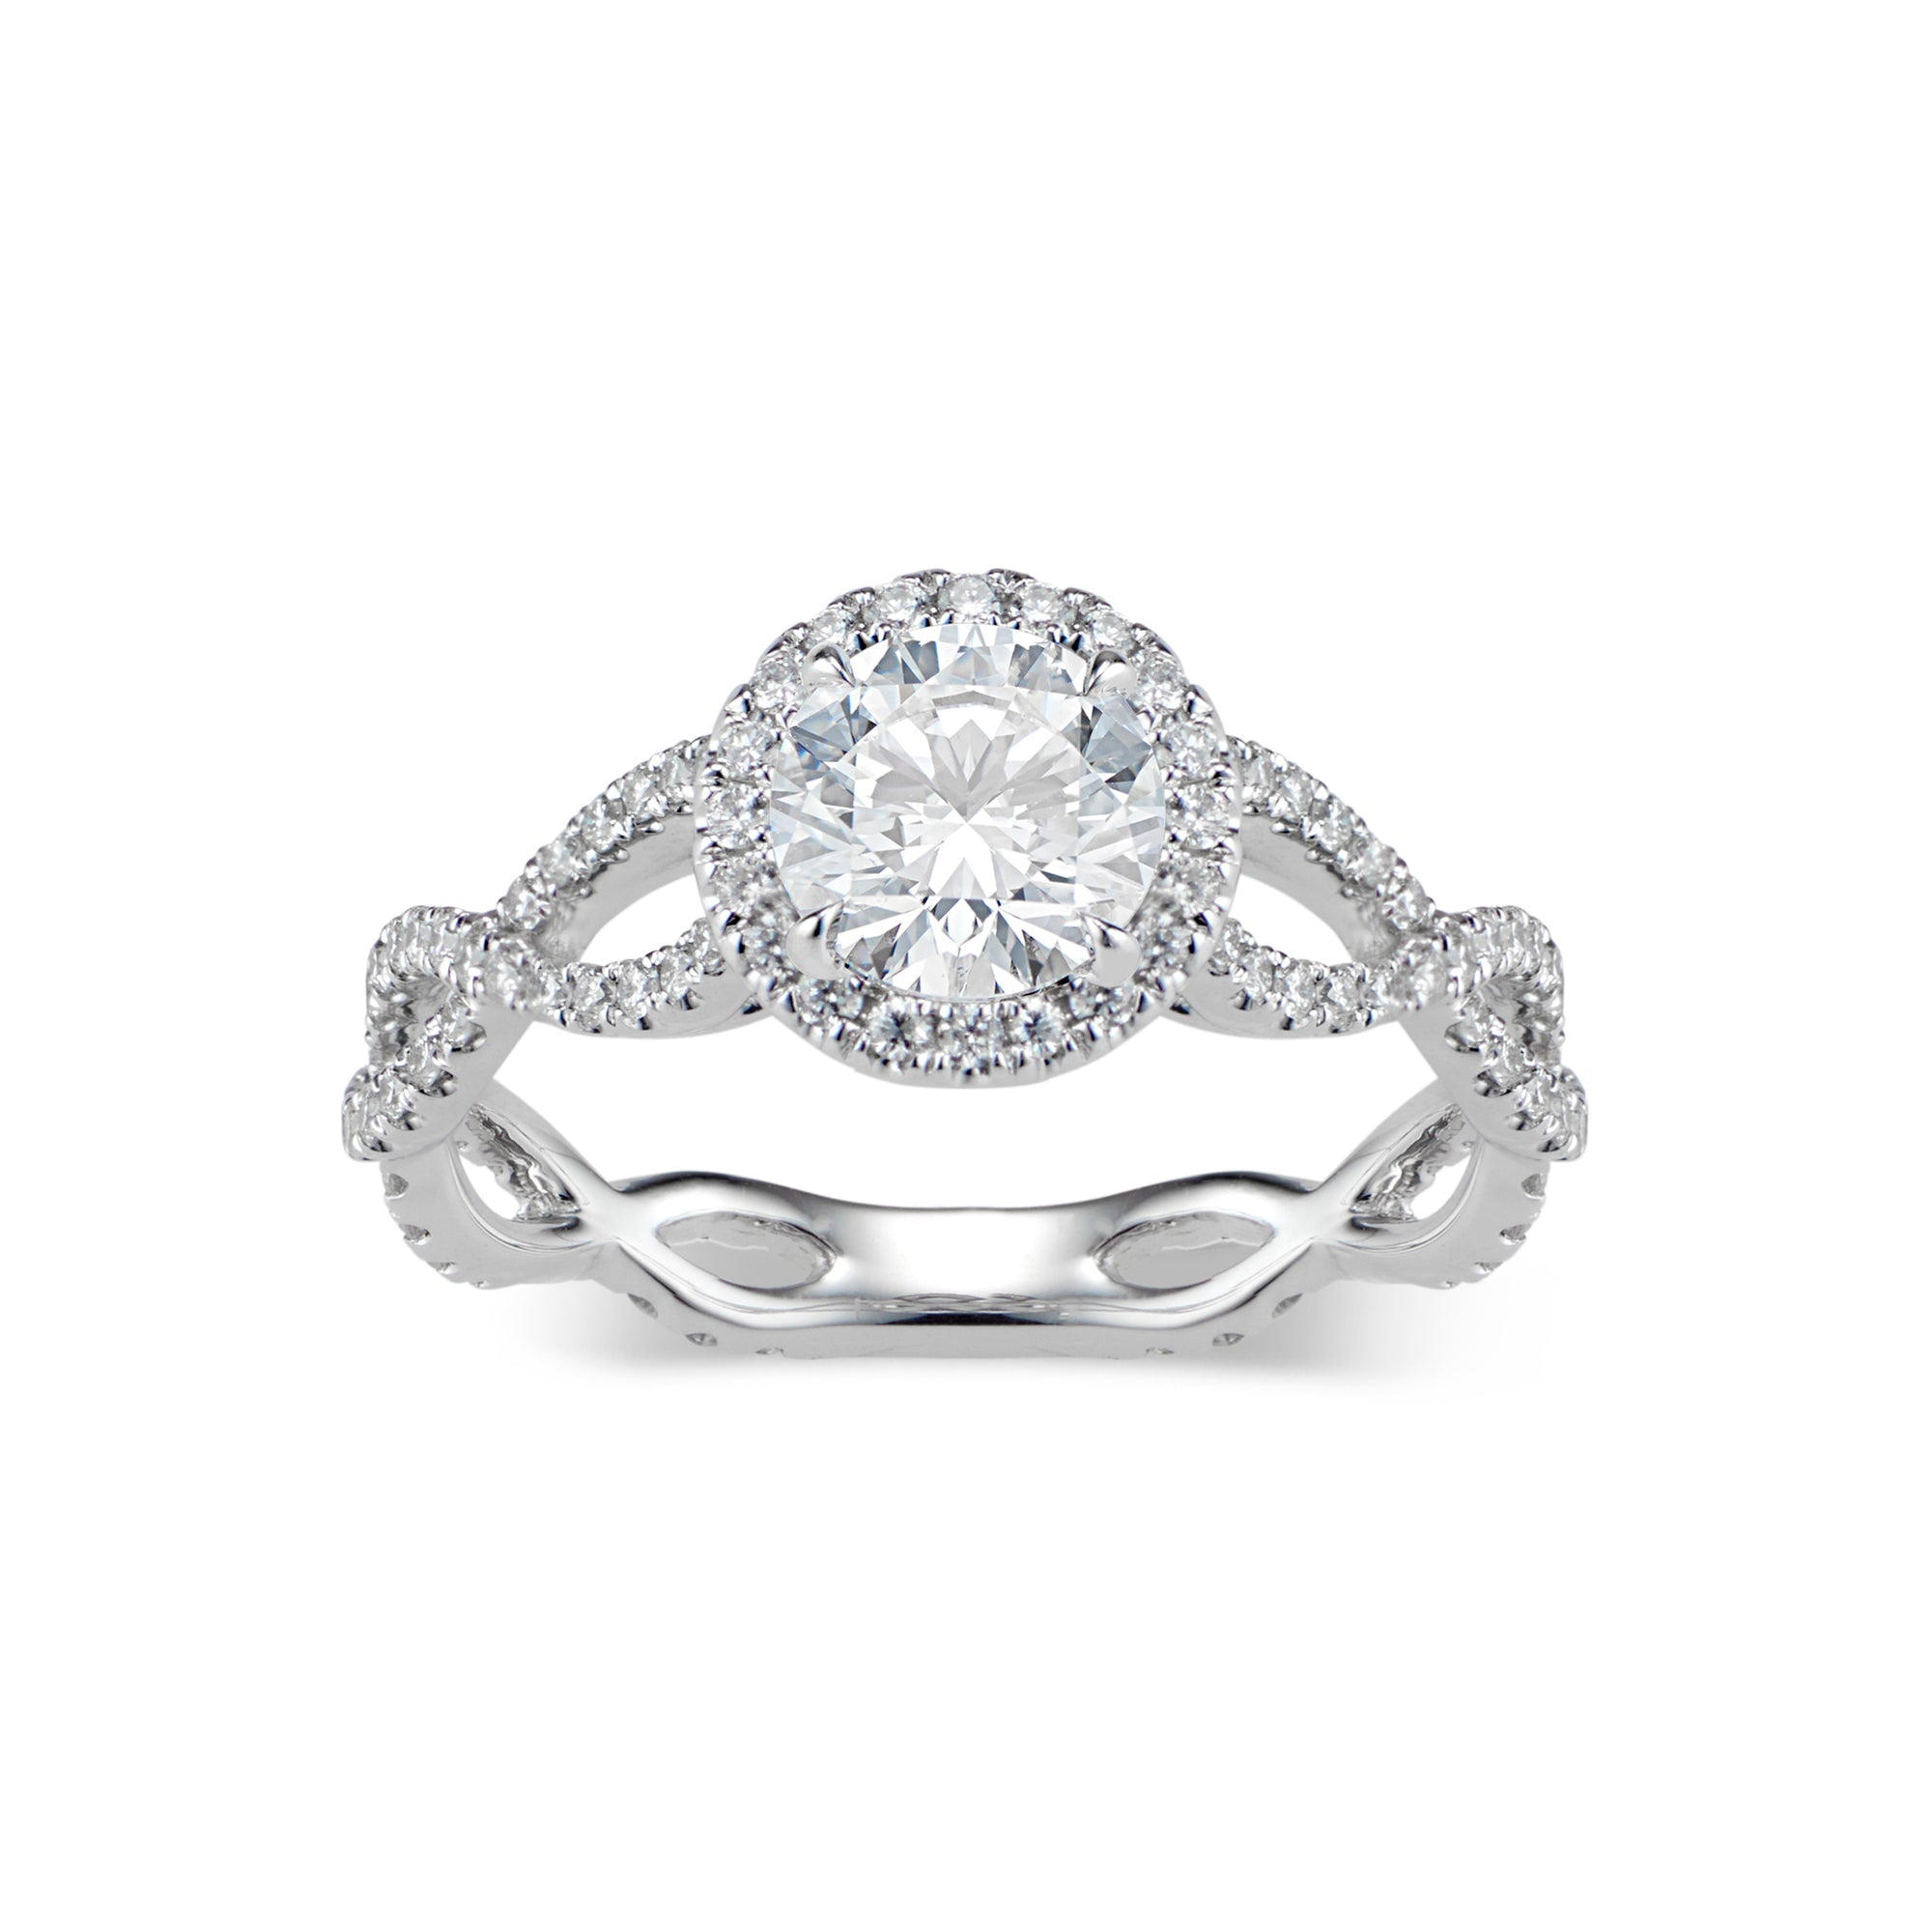 Round Diamond Halo Engagement Ring with Twisted Shank